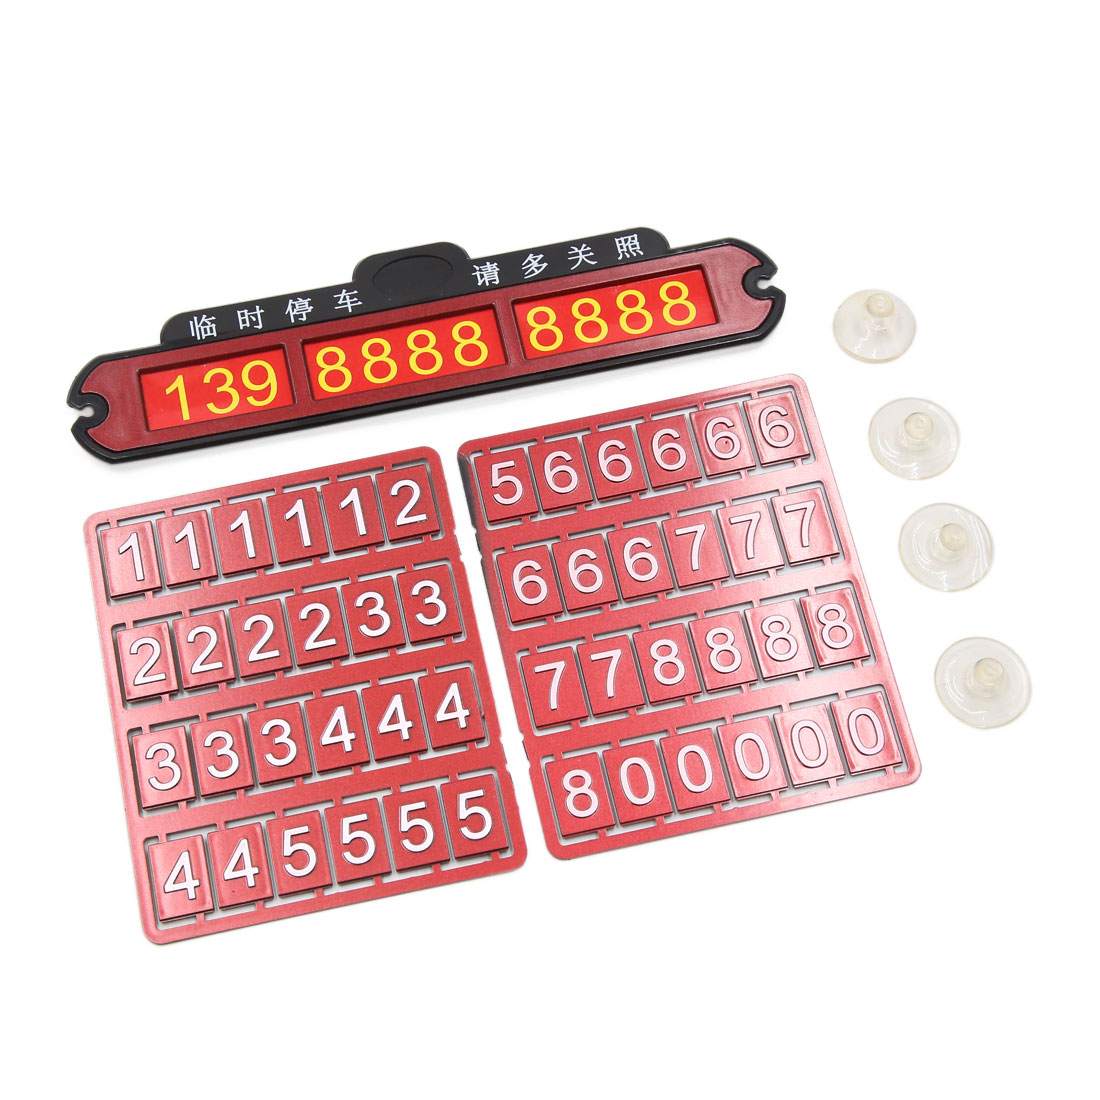 Red Plastic Car Vehicle Temporary Parking Windshield Phone Number Card Plate